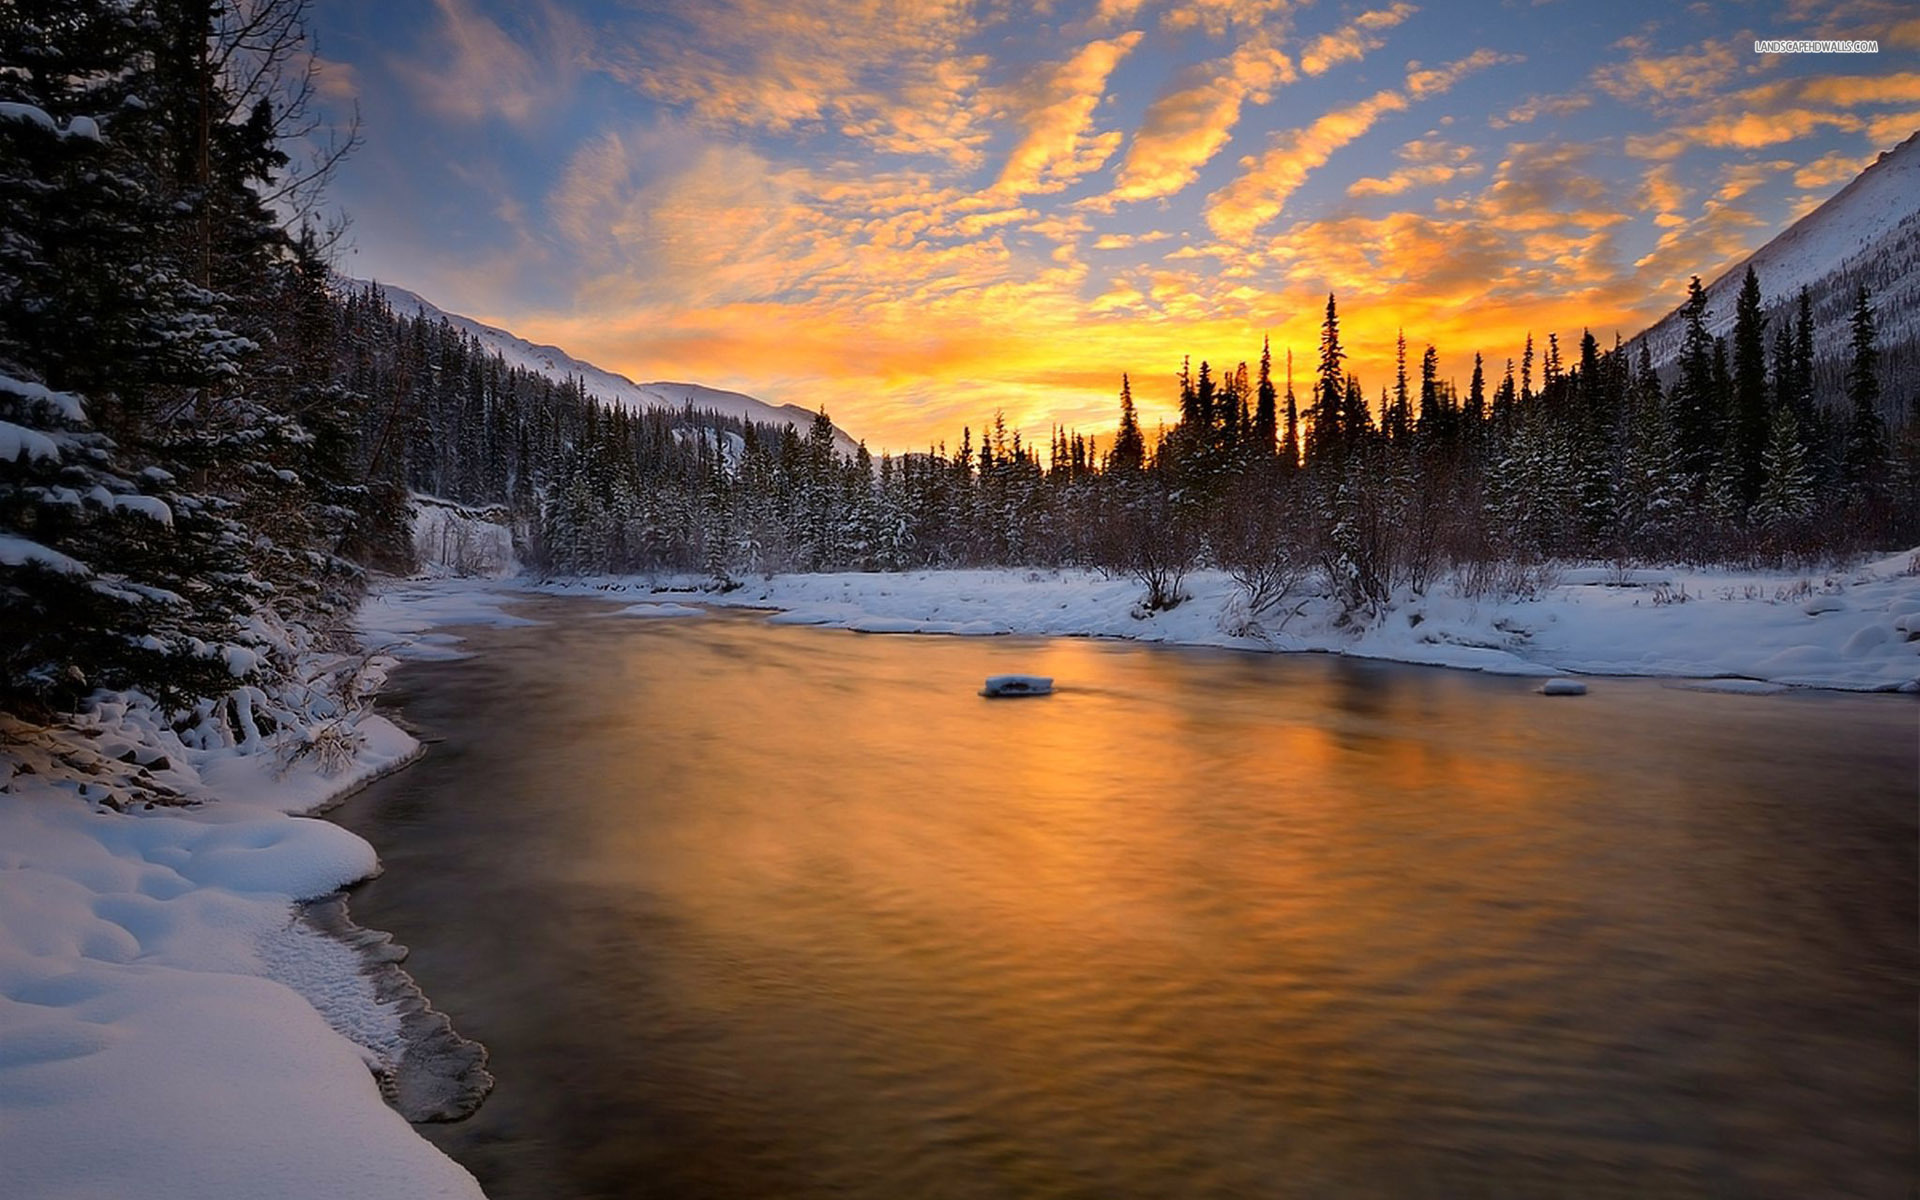 Image Calm River Sunset Forest Snowy Wallpapers And Stock Photos